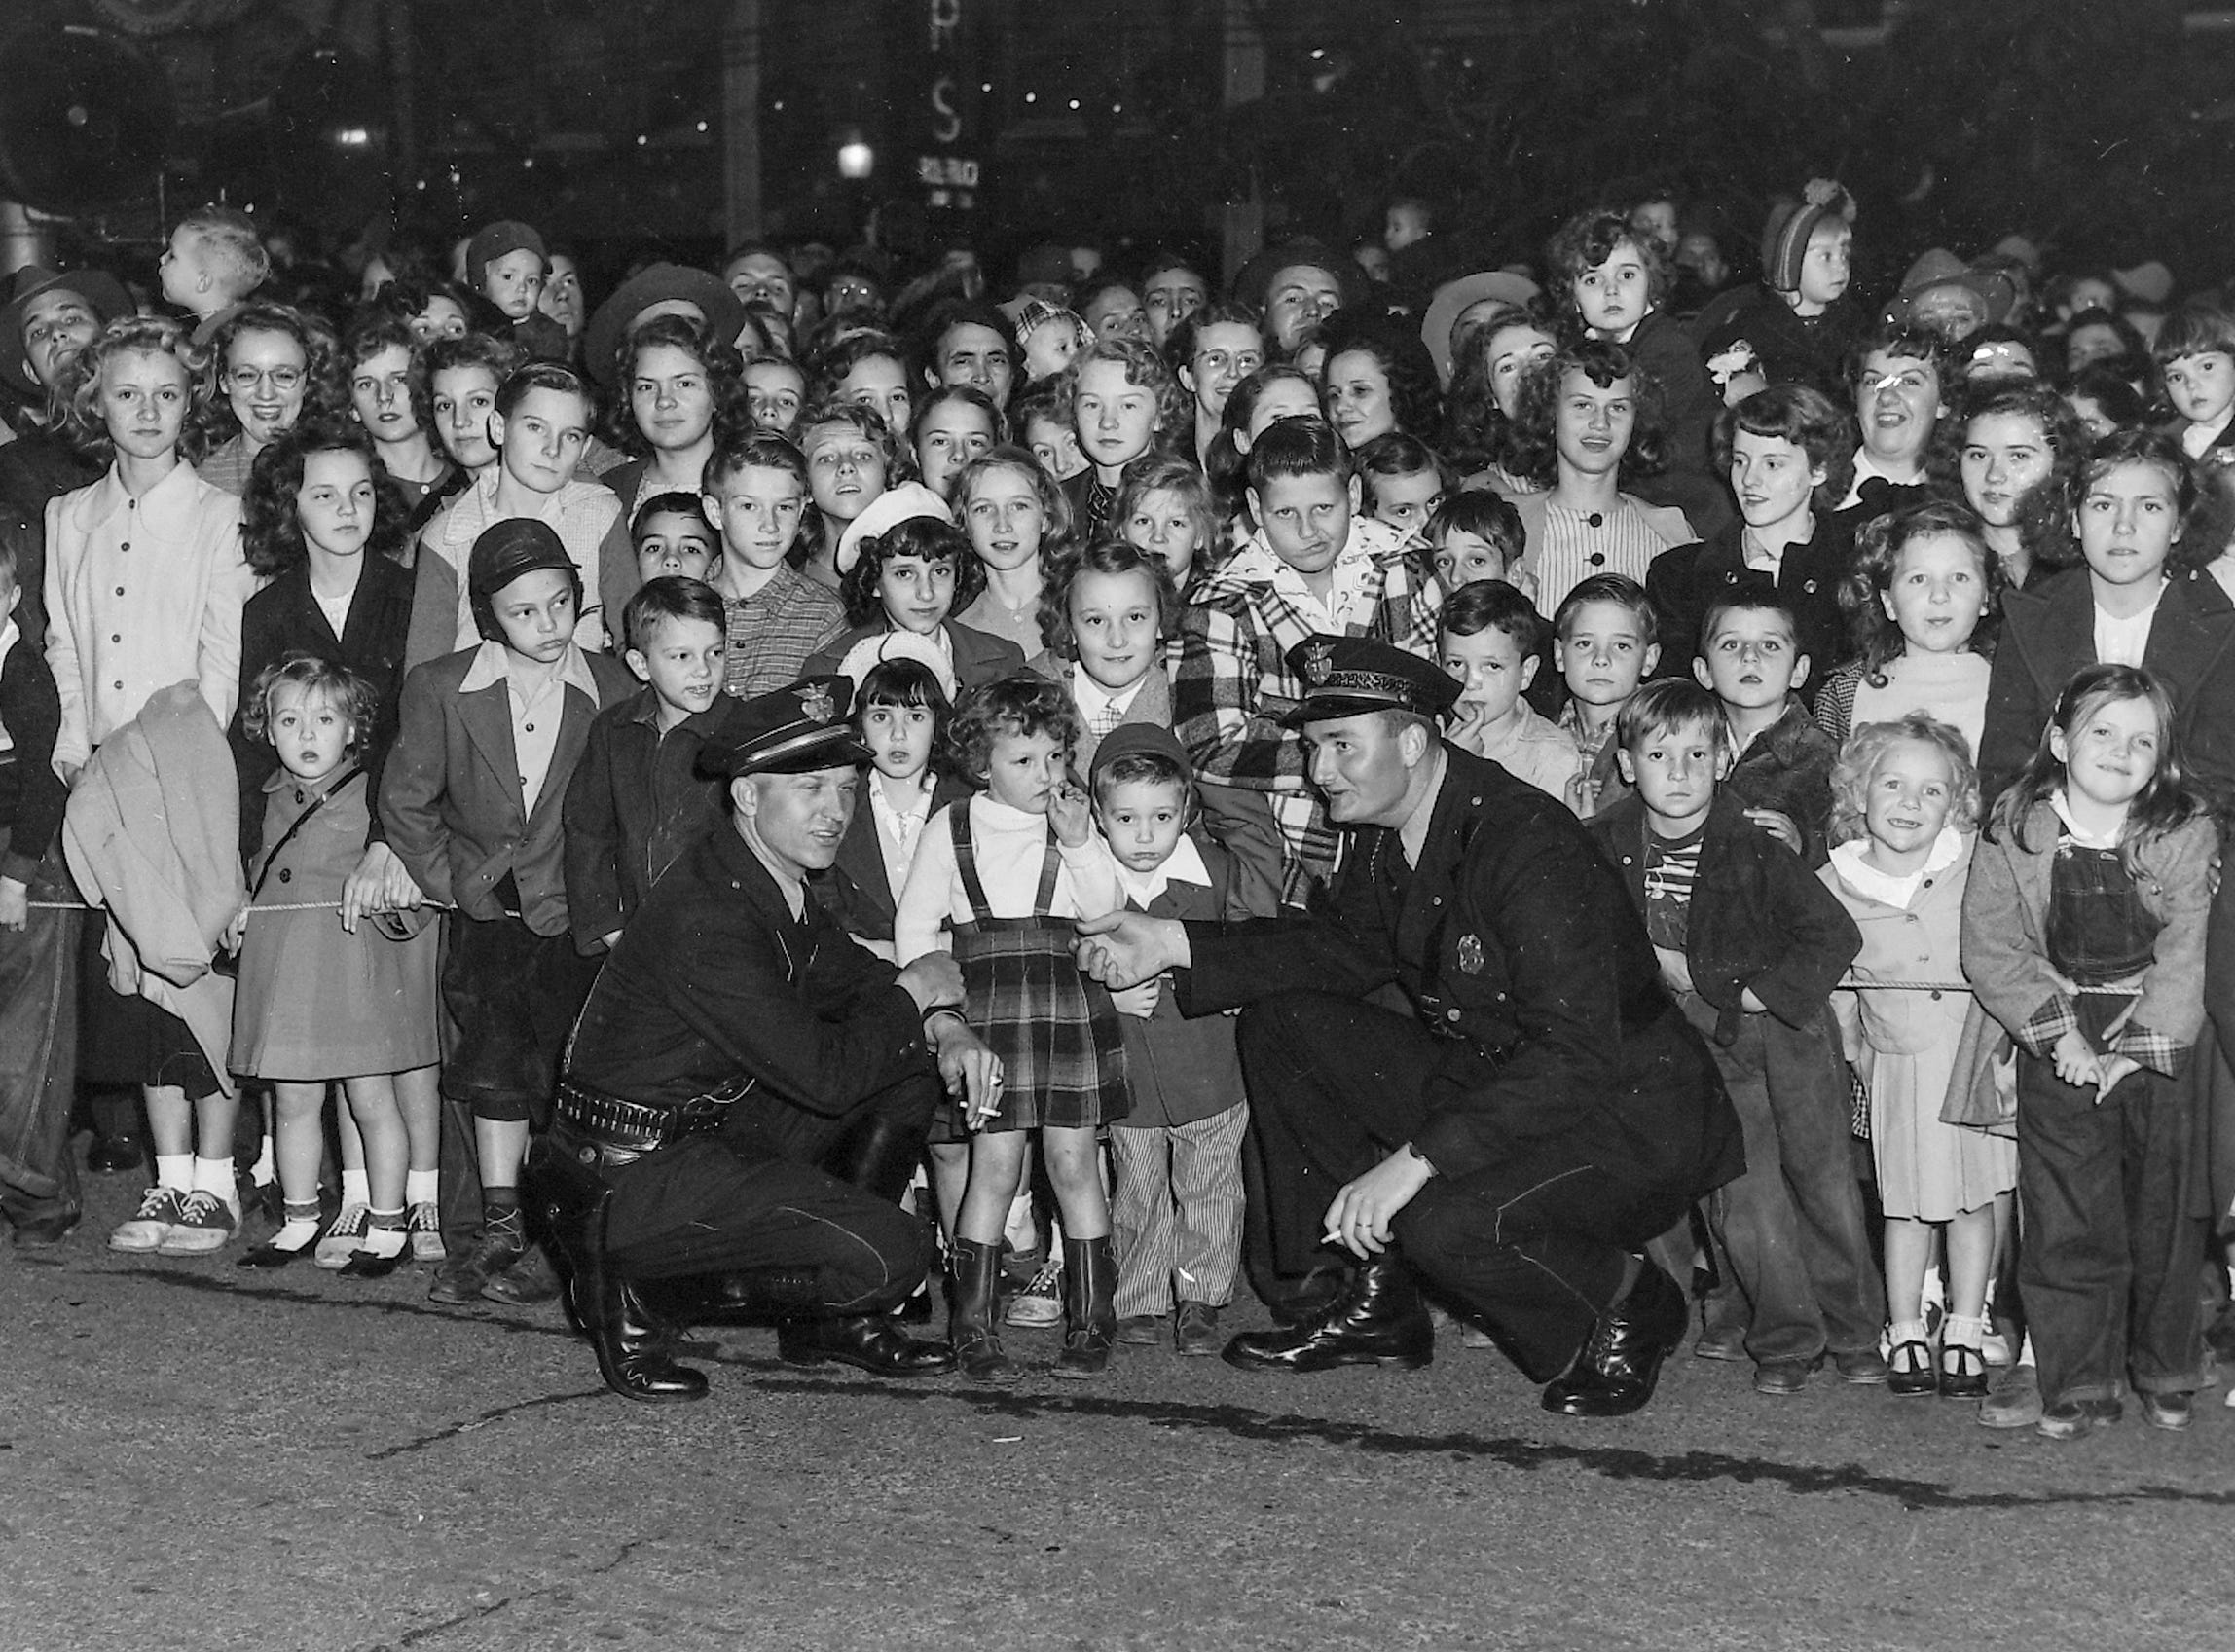 Anderson police kneel next to children at the Anderson Christmas Parade on December 1949 in downtown Anderson.